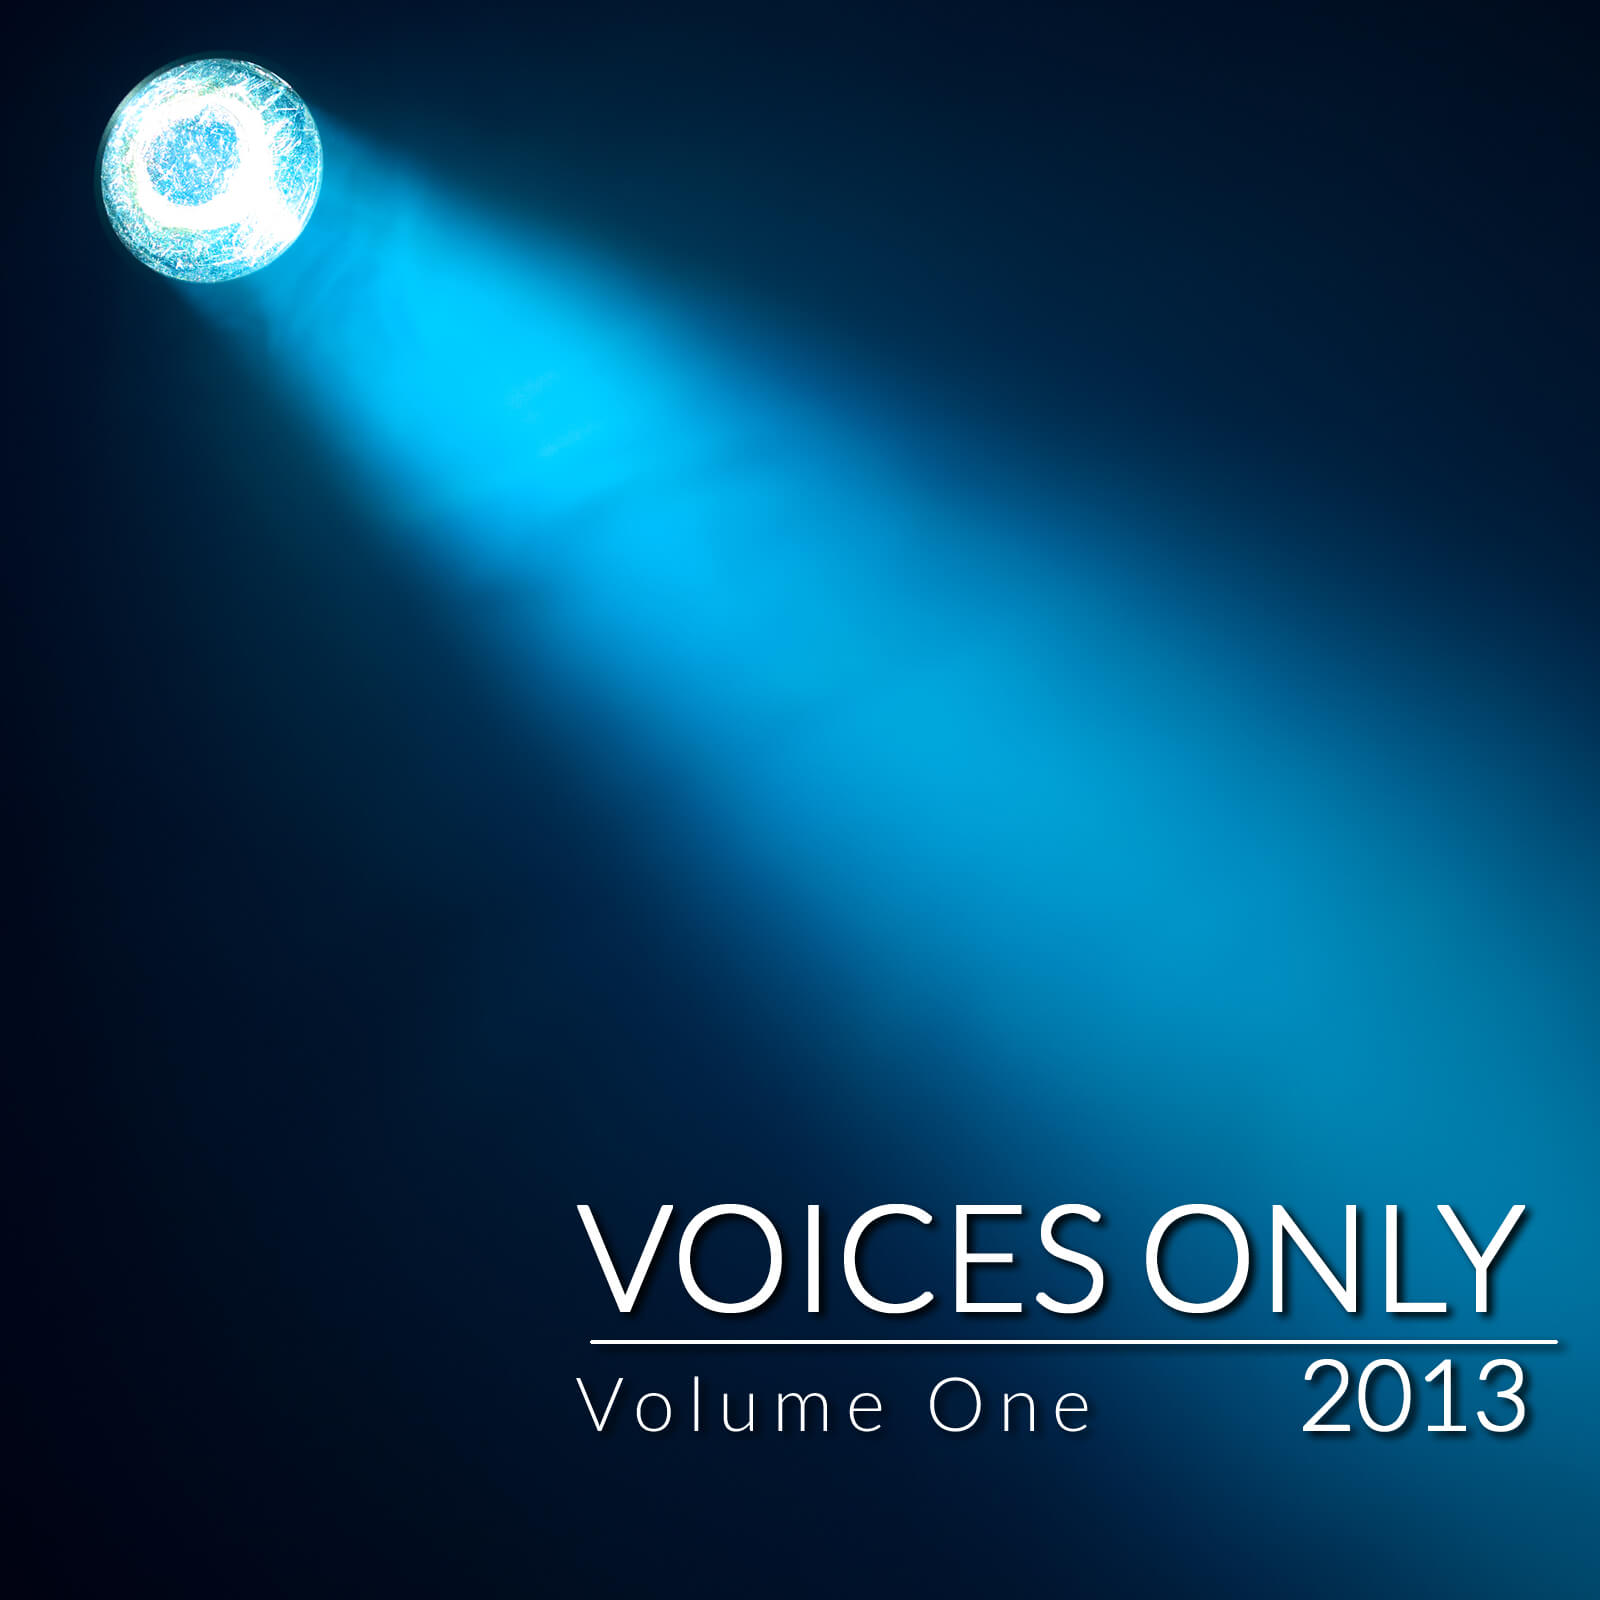 Voices Only 2011 - The best collegiate a cappella tracks on